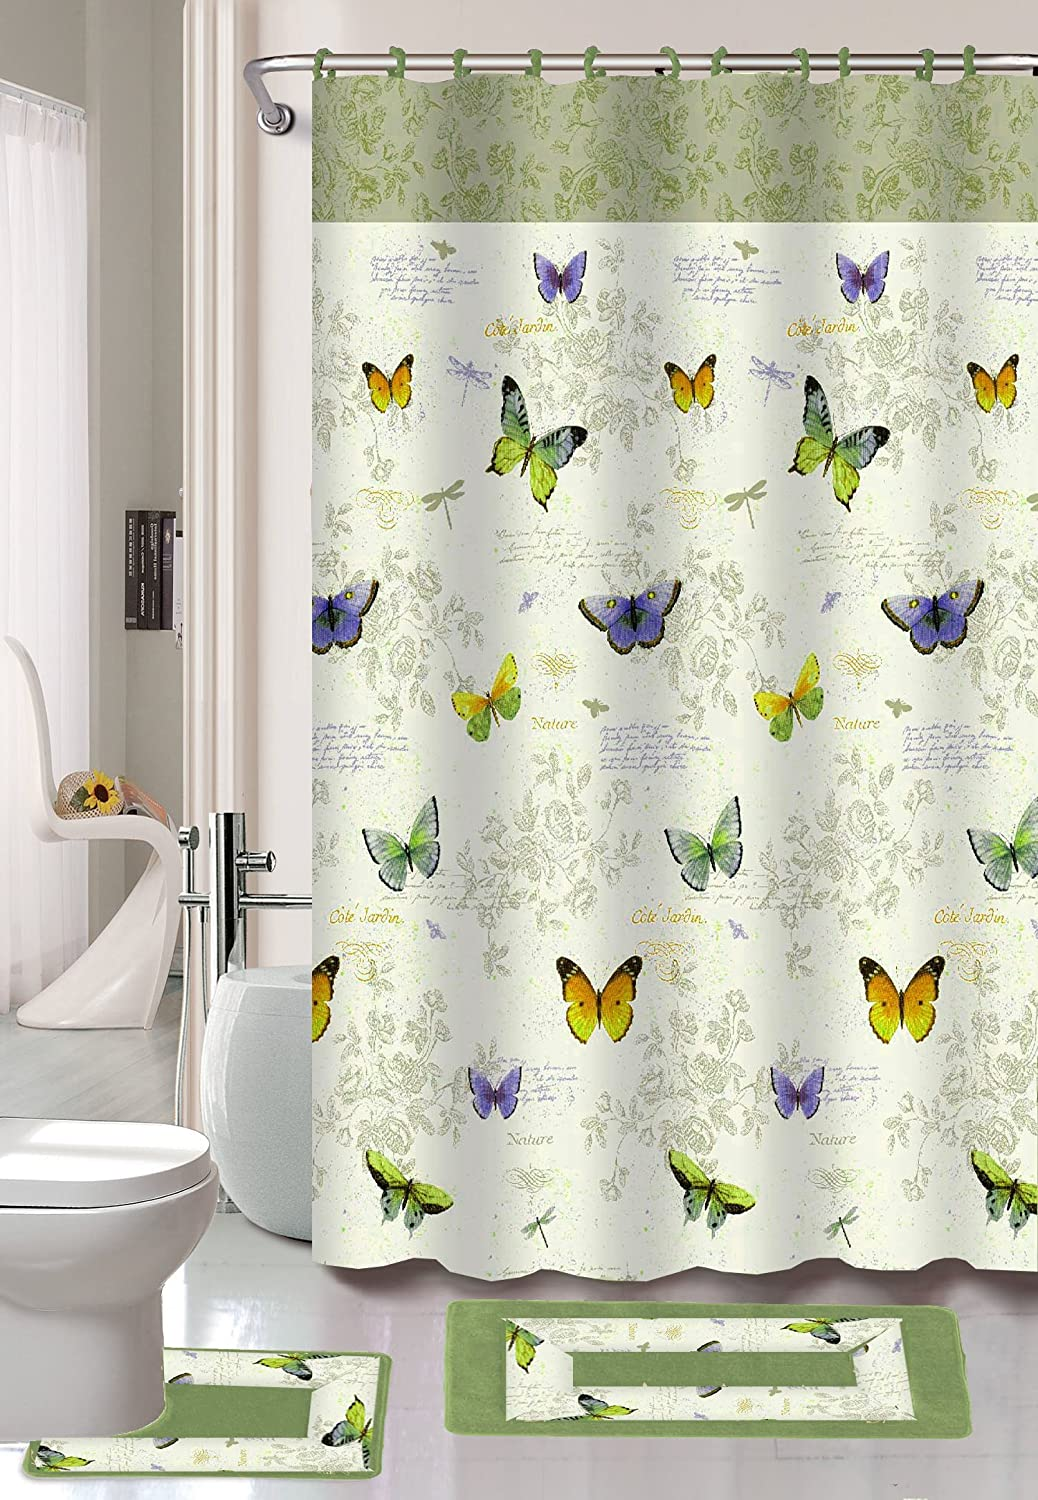 Kashi Home Maria 15pc Butterfly Printed Bathroom Accessory Shower Curtain & Rugs Set